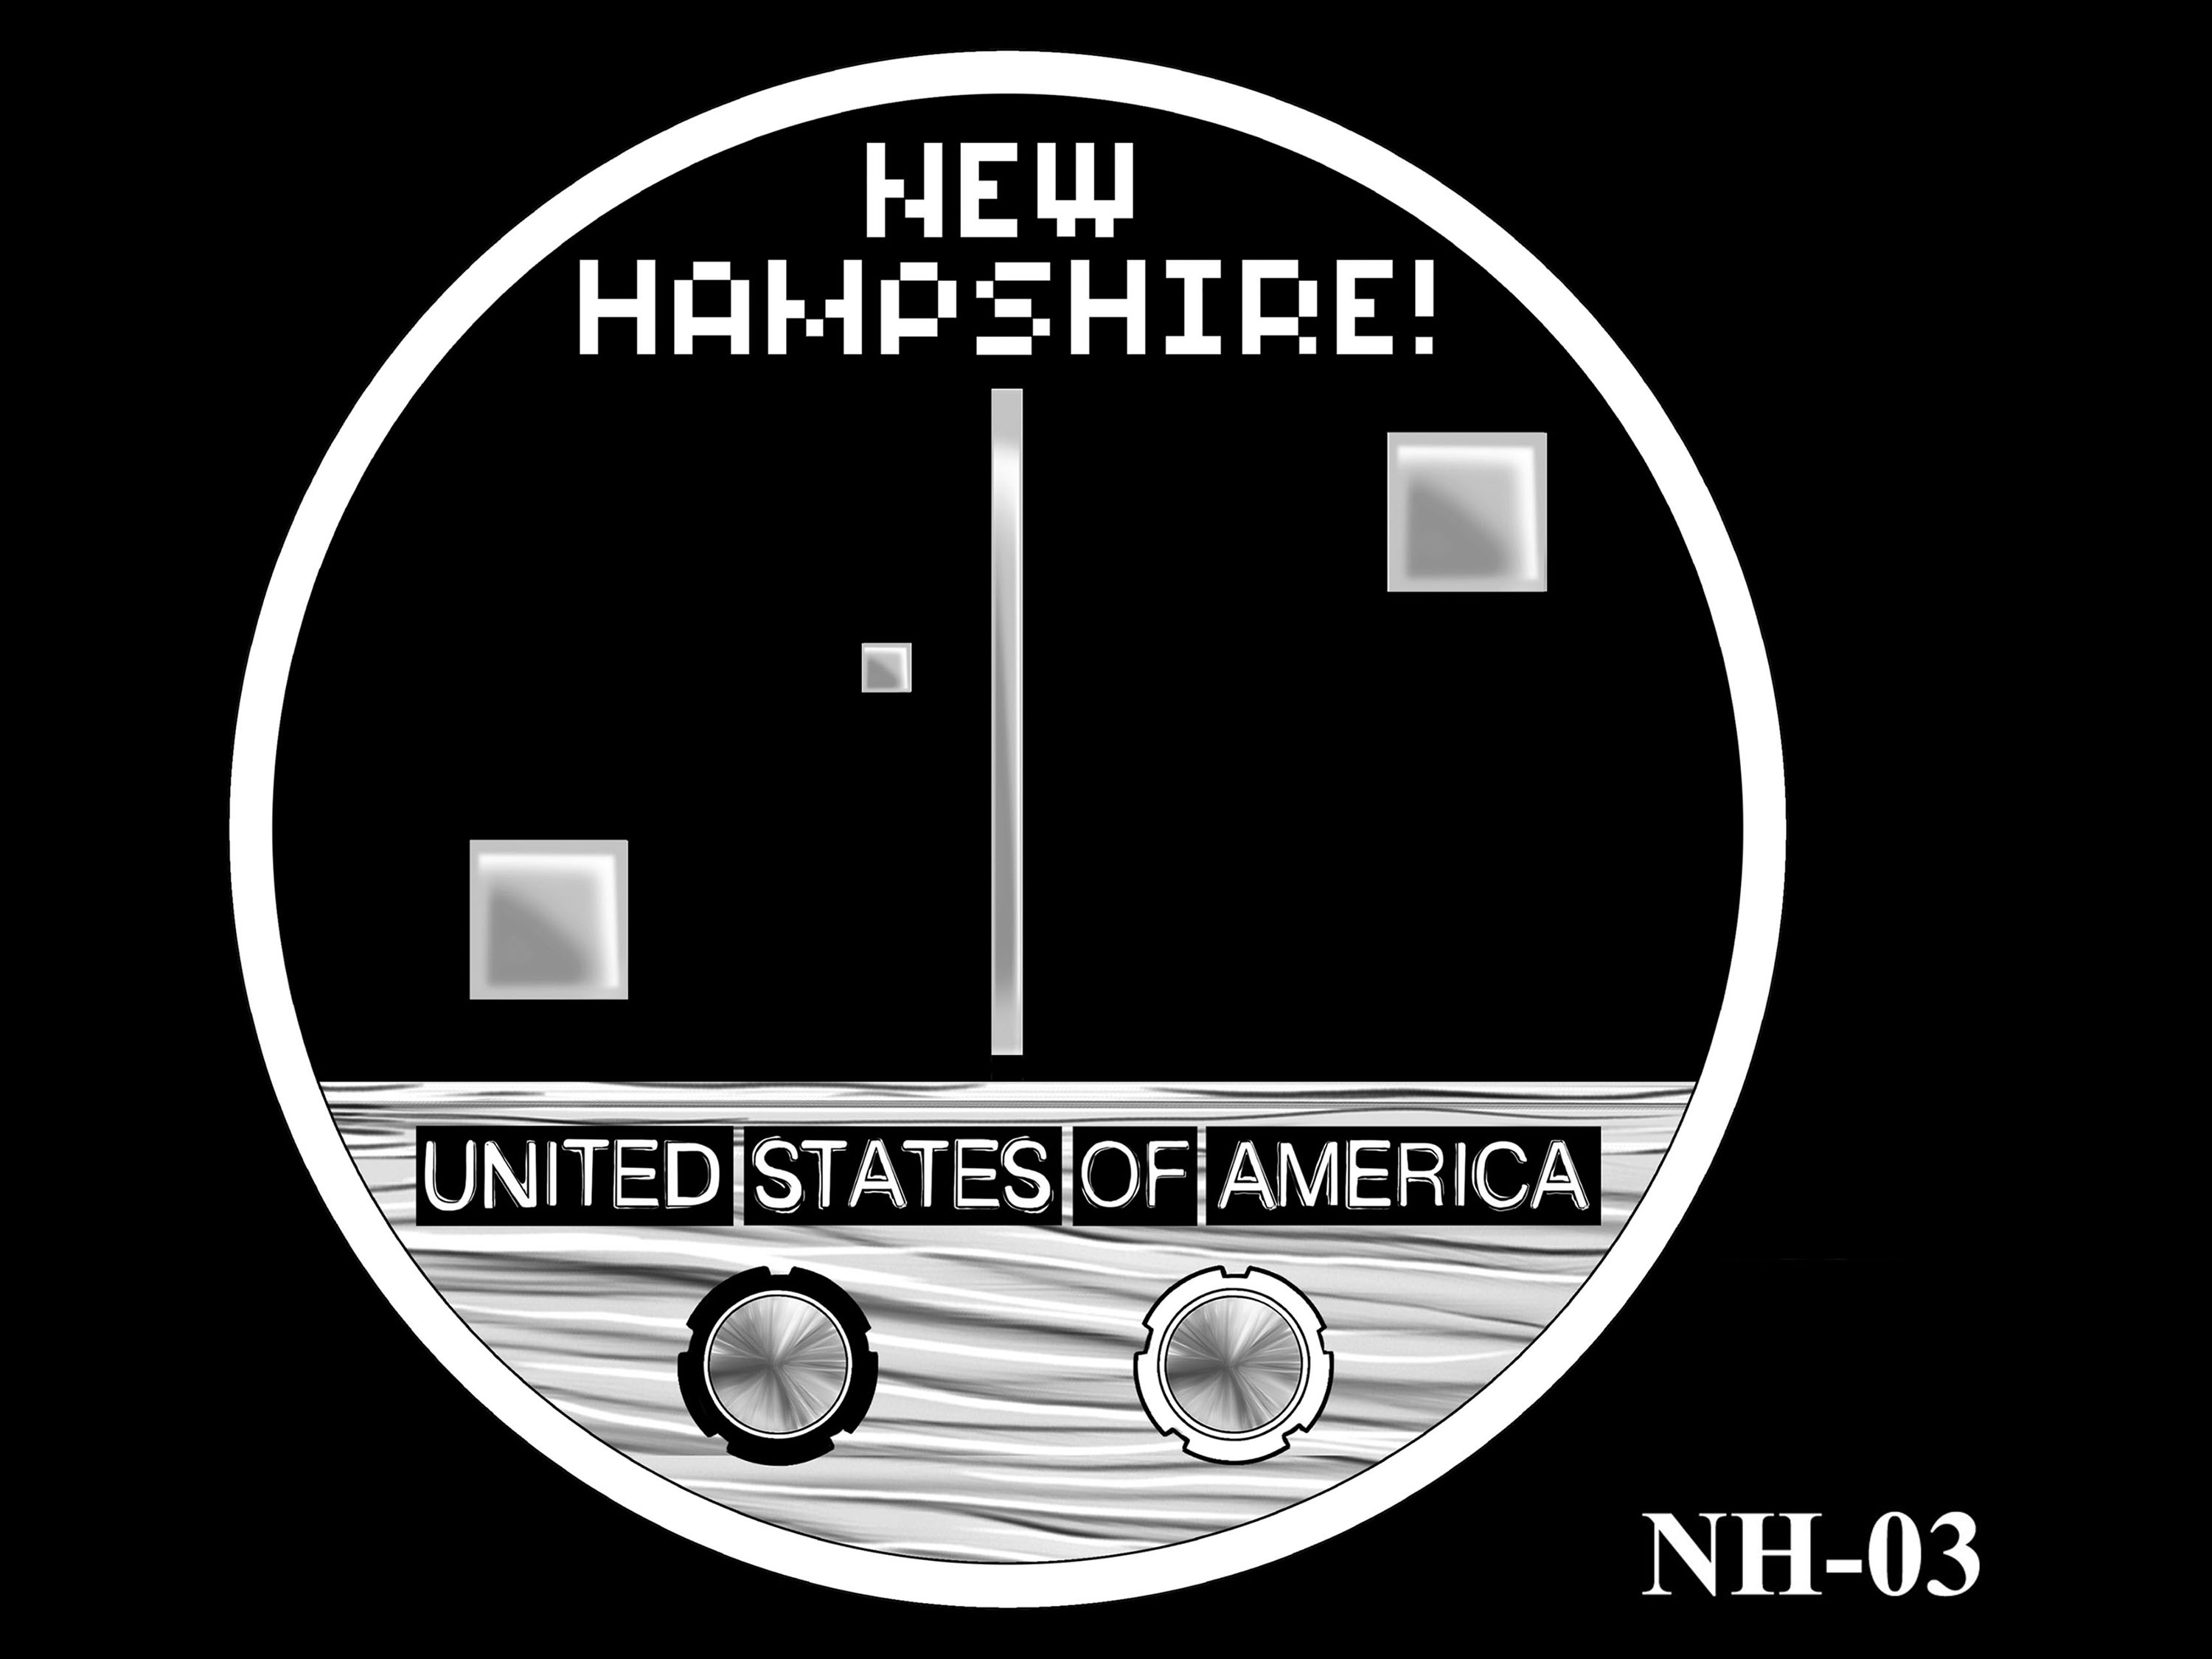 NH-03 -- 2021 American Innovation $1 Coin - New Hampshire